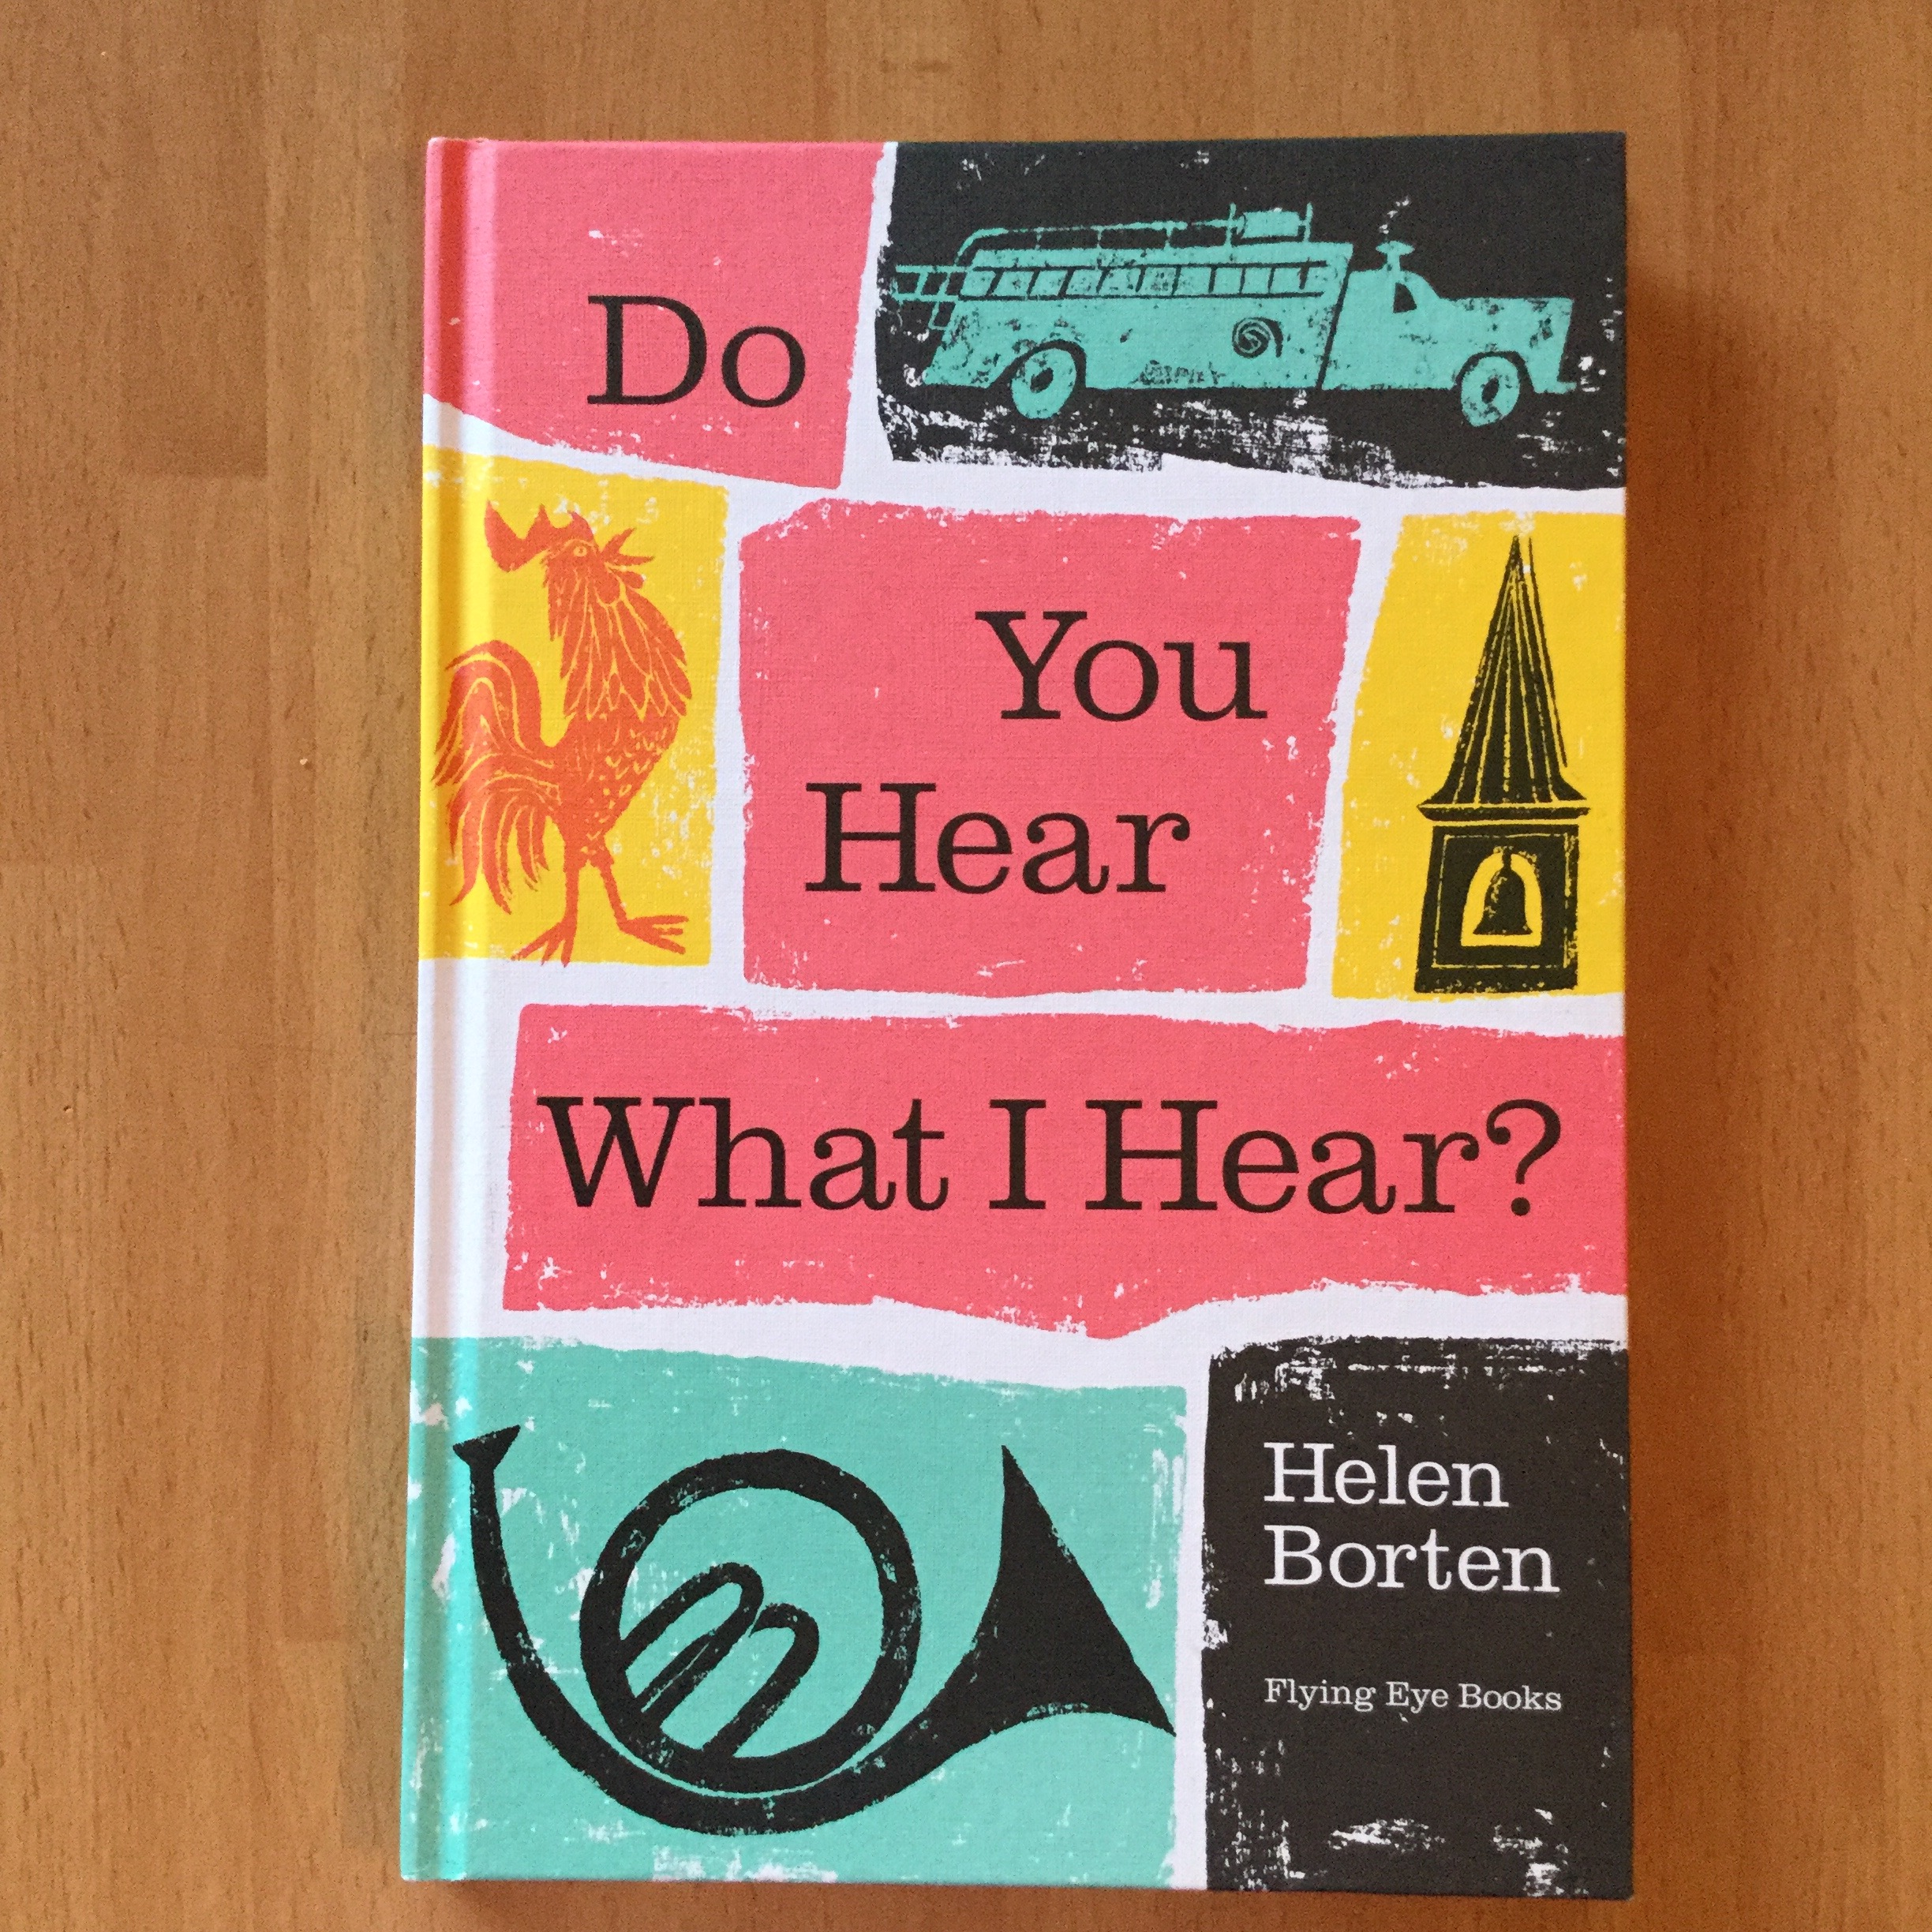 cocuklar-icin-kitap-onerileri-do-you-hear-what-i-hear-by-helen-borten-5-yas-ve-uzeri